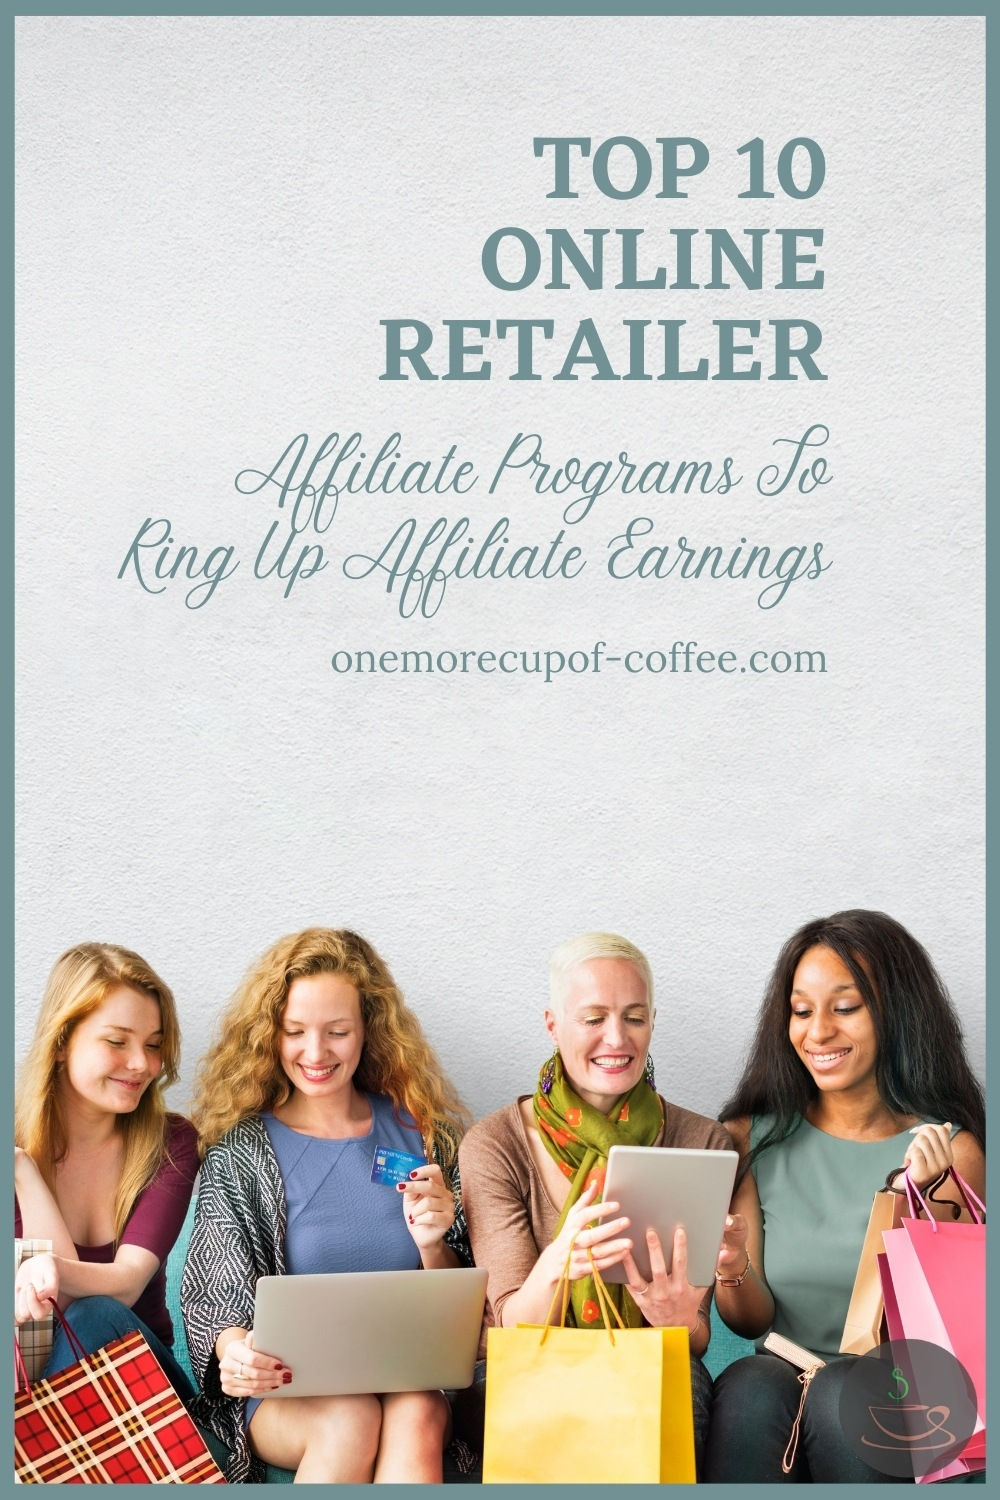 """four women seated with their laptop and tablet, shopping online while holding on to their shopping bags; with text overlay """"Top 10 Online Retailer Affiliate Programs To Ring Up Affiliate Earnings"""""""